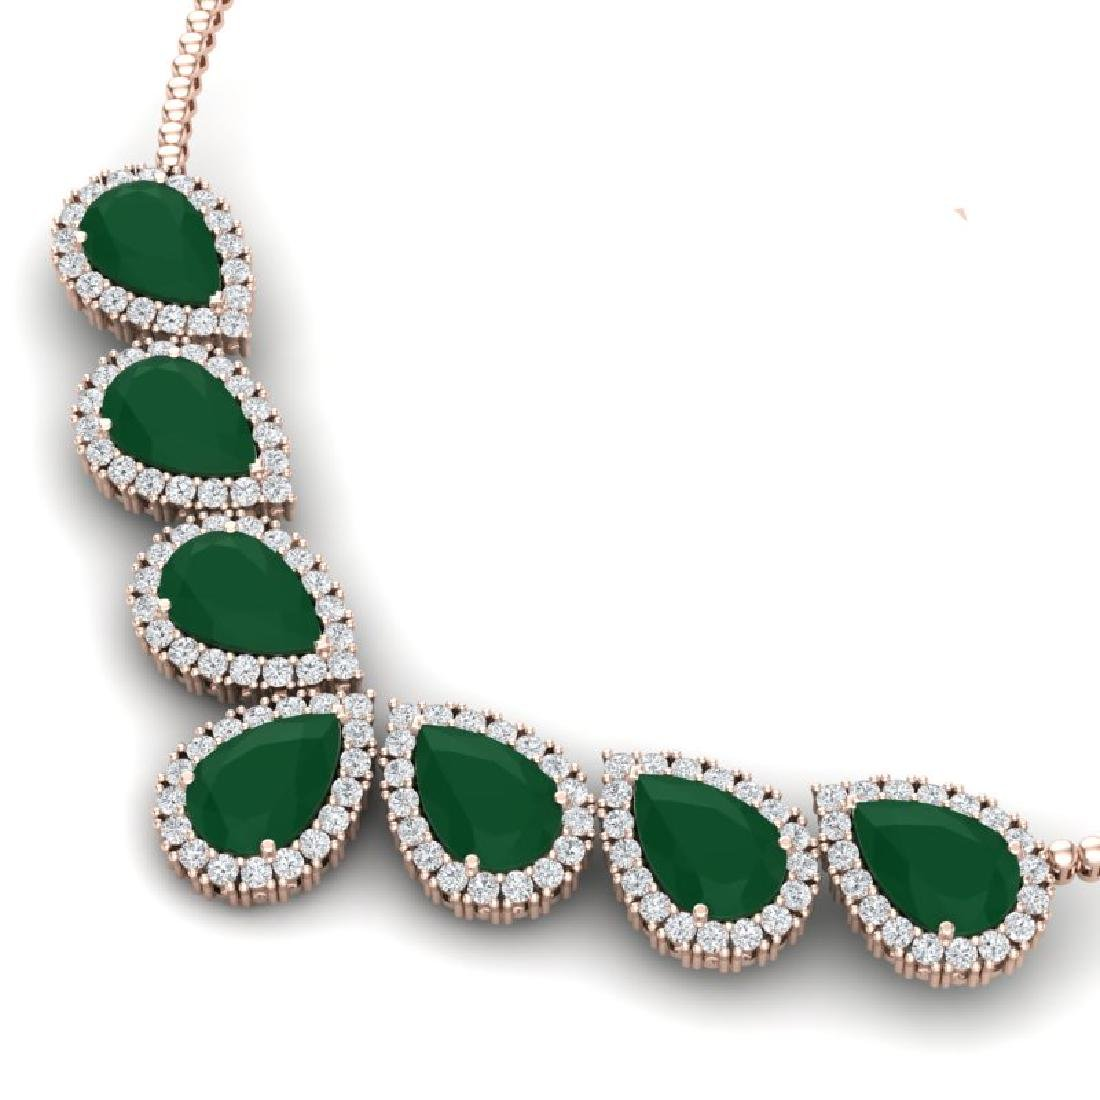 34.72 CTW Royalty Emerald & VS Diamond Necklace 18K - 2